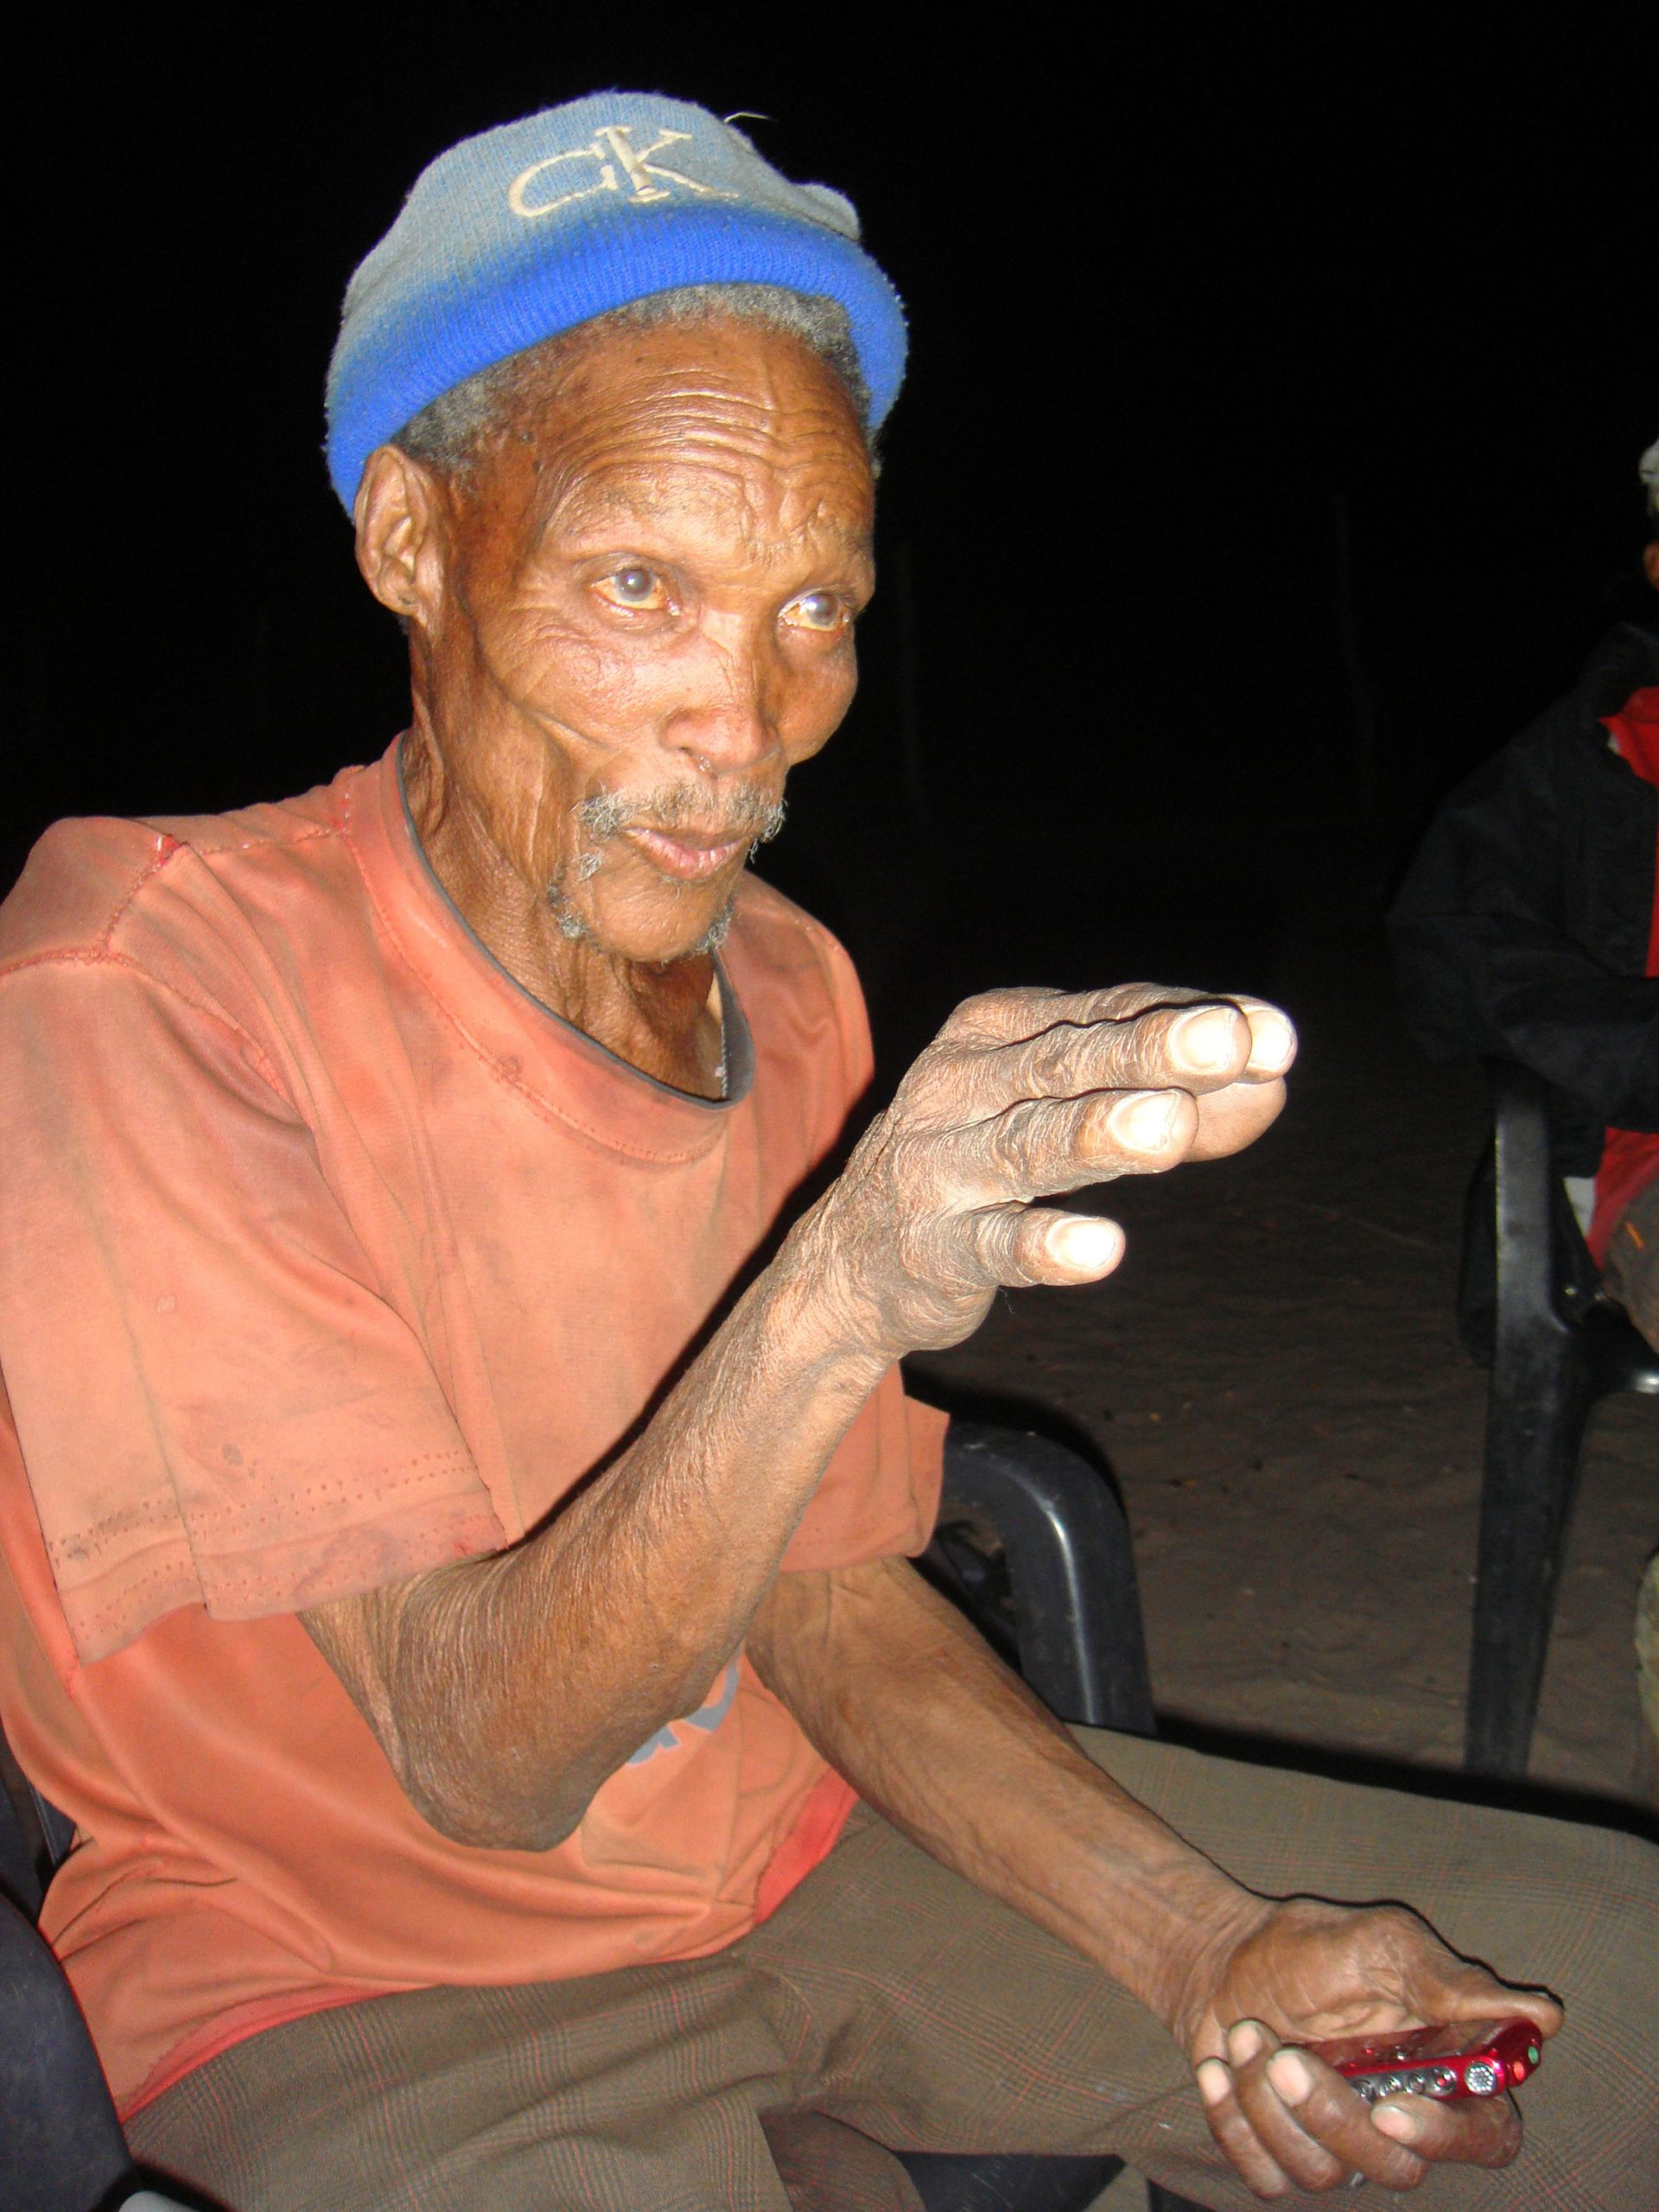 A !Kung Bushman, sporting a Calvin Klein hat, tells stories at a firelight gathering in Africa's Kalahari Desert. University of Utah anthropologist Polly Wiessner has published a new study of the Bushmen suggesting that when firelight extended the day for human ancestors, stories told around the campfire helped stimulate human mental, social and cultural development.